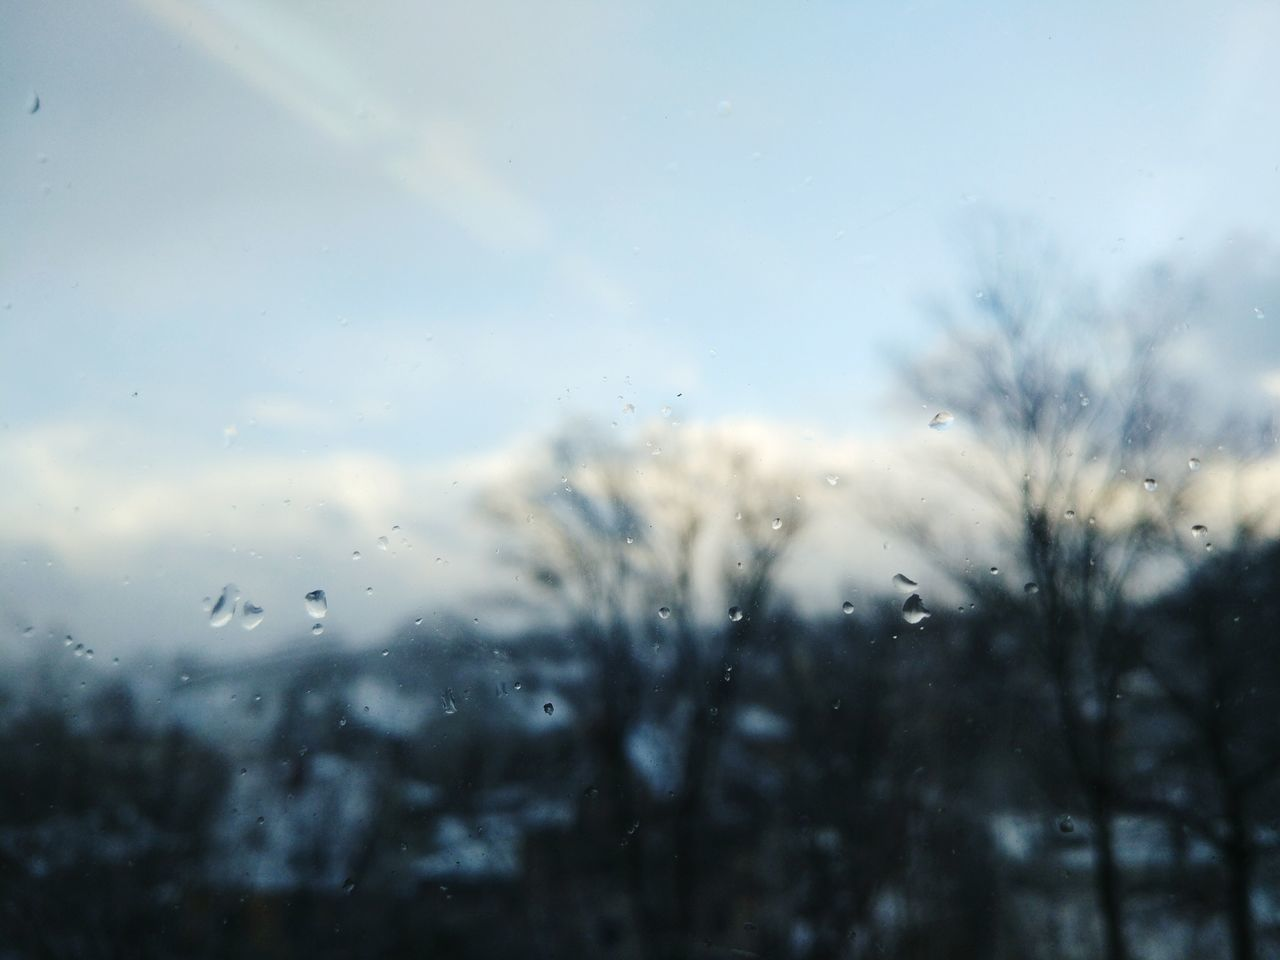 Rain Sky Rainy Season Wet Nature No People Outdoors Day Beauty In Nature Snow ❄ Snow Snapshots Of Life EyeEm Tranquility Minimalism First Eyeem Photo Eyeemphoto Nature Beauty In Nature